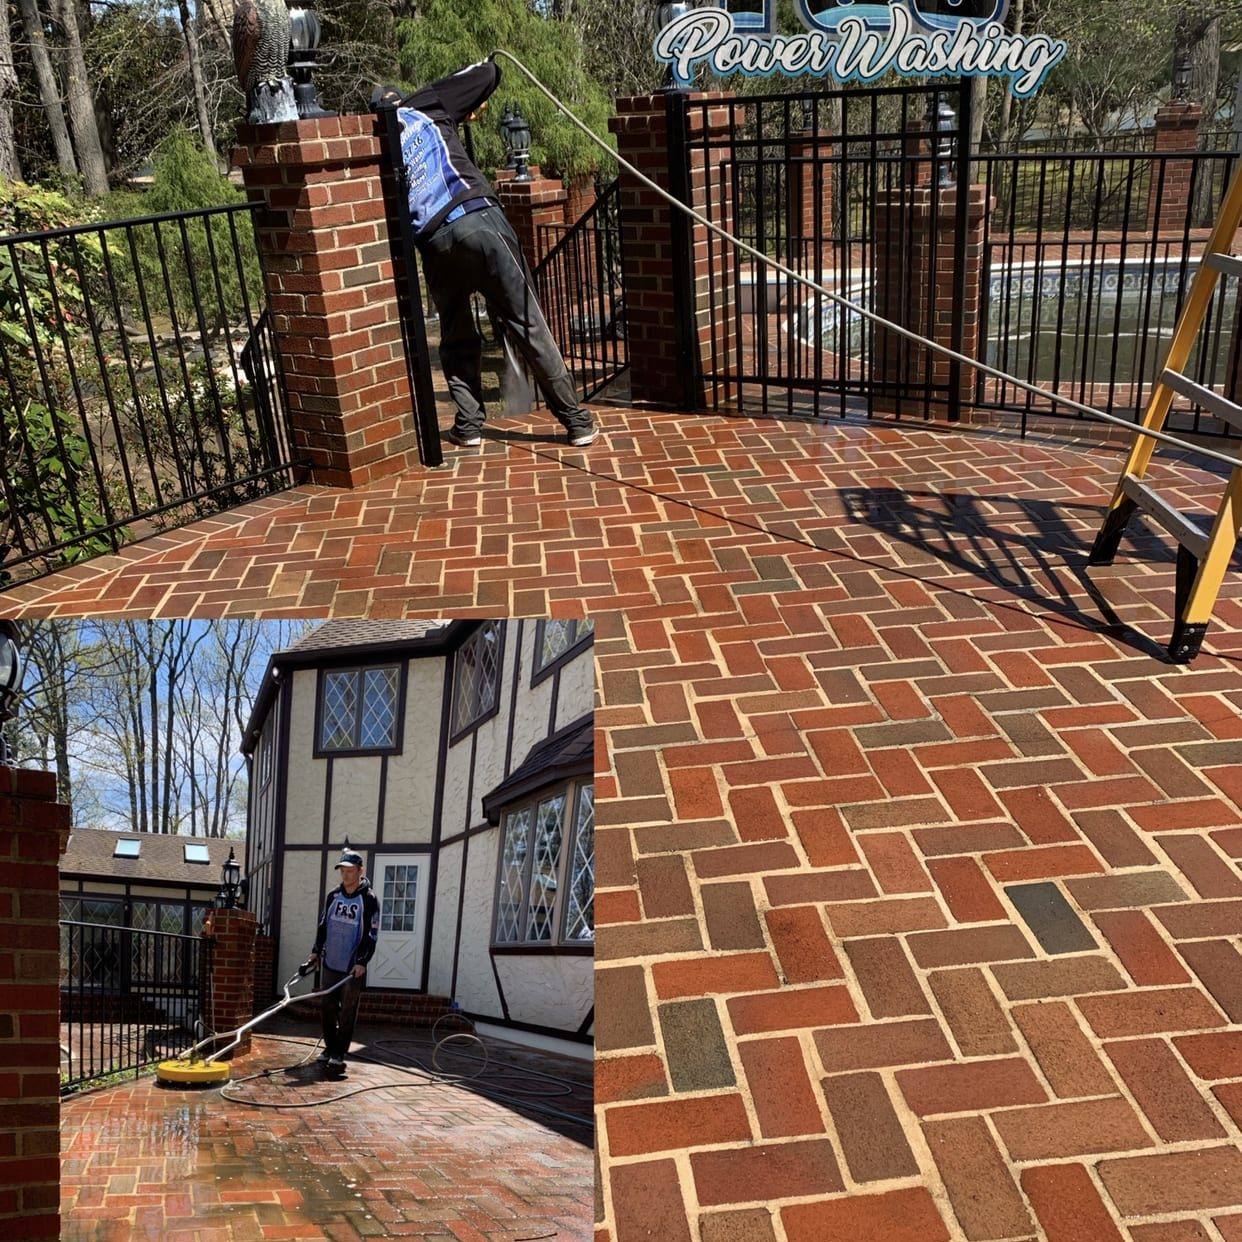 At F&S Power Washing, we don't take a one-size-fits-all approach to paver cleaning. We like to make custom plans for each project. After all, the right way to clean pavers depends on things like how dirty the surface is and what material the pavers are made of. When we evaluate your paver cleaning needs, we can determine the right amount of pressure to remove dirt, mold, and fungi. We don't want to use too much water pressure because it could damage your pavers. We aim to get the perfect level to revitalize your pavers, making them as attractive as the day they were installed.